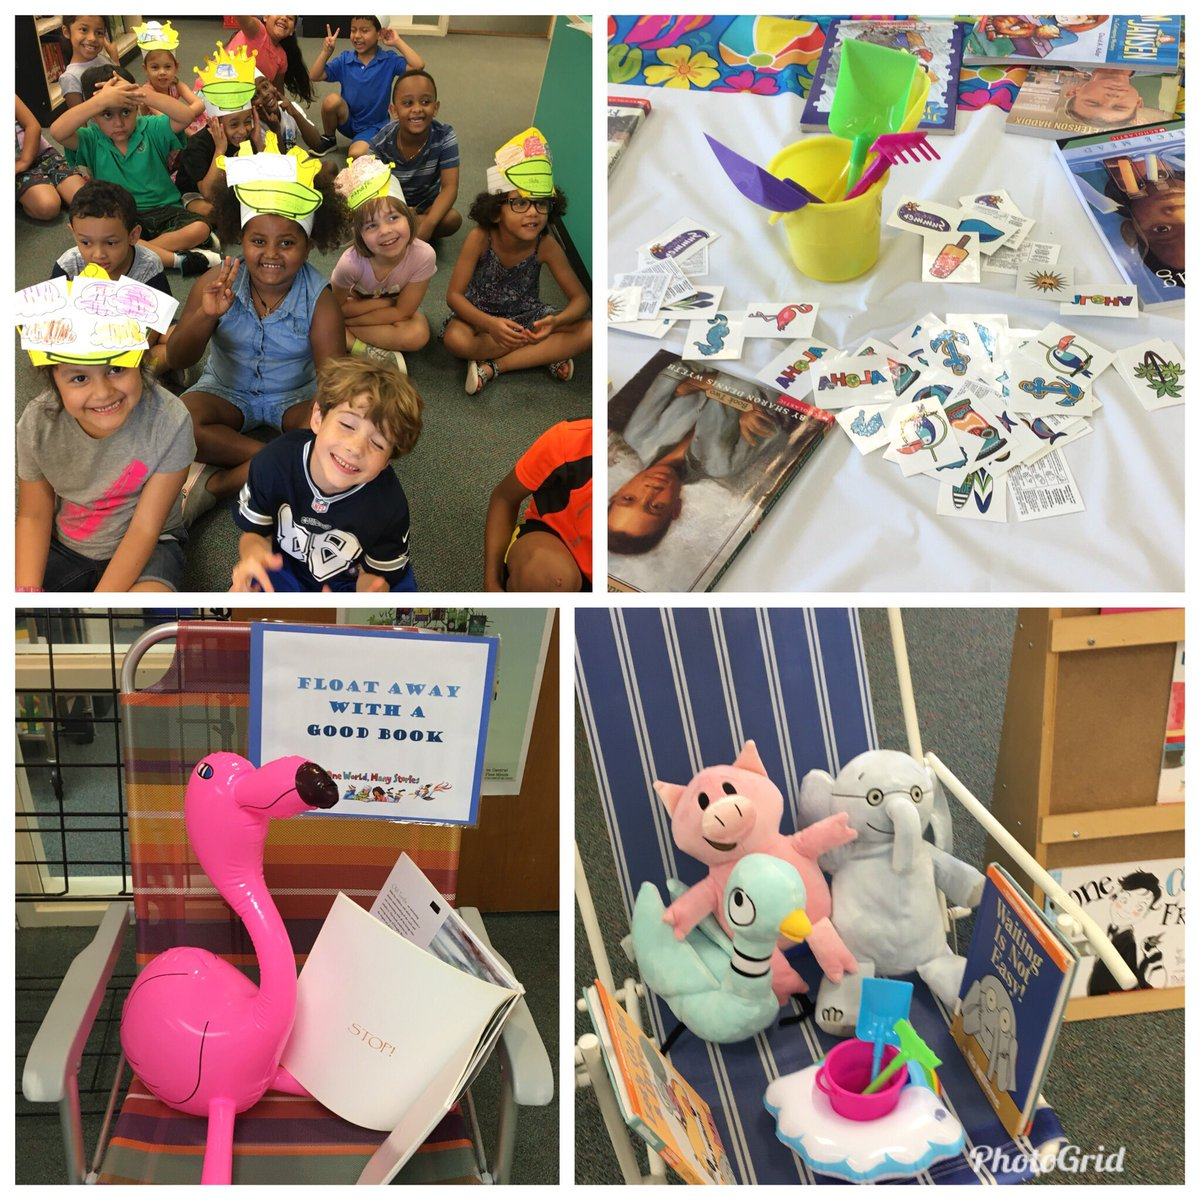 Barcroft's last RIF distribution of the year with the theme FLOAT Away With a GOOD BOOK! <a target='_blank' href='http://search.twitter.com/search?q=BarcroftSoars'><a target='_blank' href='https://twitter.com/hashtag/BarcroftSoars?src=hash'>#BarcroftSoars</a></a> <a target='_blank' href='http://twitter.com/APSVirginia'>@APSVirginia</a> <a target='_blank' href='http://twitter.com/RIFWEB'>@RIFWEB</a> <a target='_blank' href='http://twitter.com/MrsBlackatDrew'>@MrsBlackatDrew</a> <a target='_blank' href='http://twitter.com/APSLibrarians'>@APSLibrarians</a> <a target='_blank' href='http://twitter.com/APL_Jayla'>@APL_Jayla</a> <a target='_blank' href='http://twitter.com/teachnpe'>@teachnpe</a> <a target='_blank' href='http://twitter.com/ddcoggins'>@ddcoggins</a> <a target='_blank' href='http://twitter.com/MissWelsh_APS'>@MissWelsh_APS</a> <a target='_blank' href='https://t.co/OW1TQfRGGJ'>https://t.co/OW1TQfRGGJ</a>